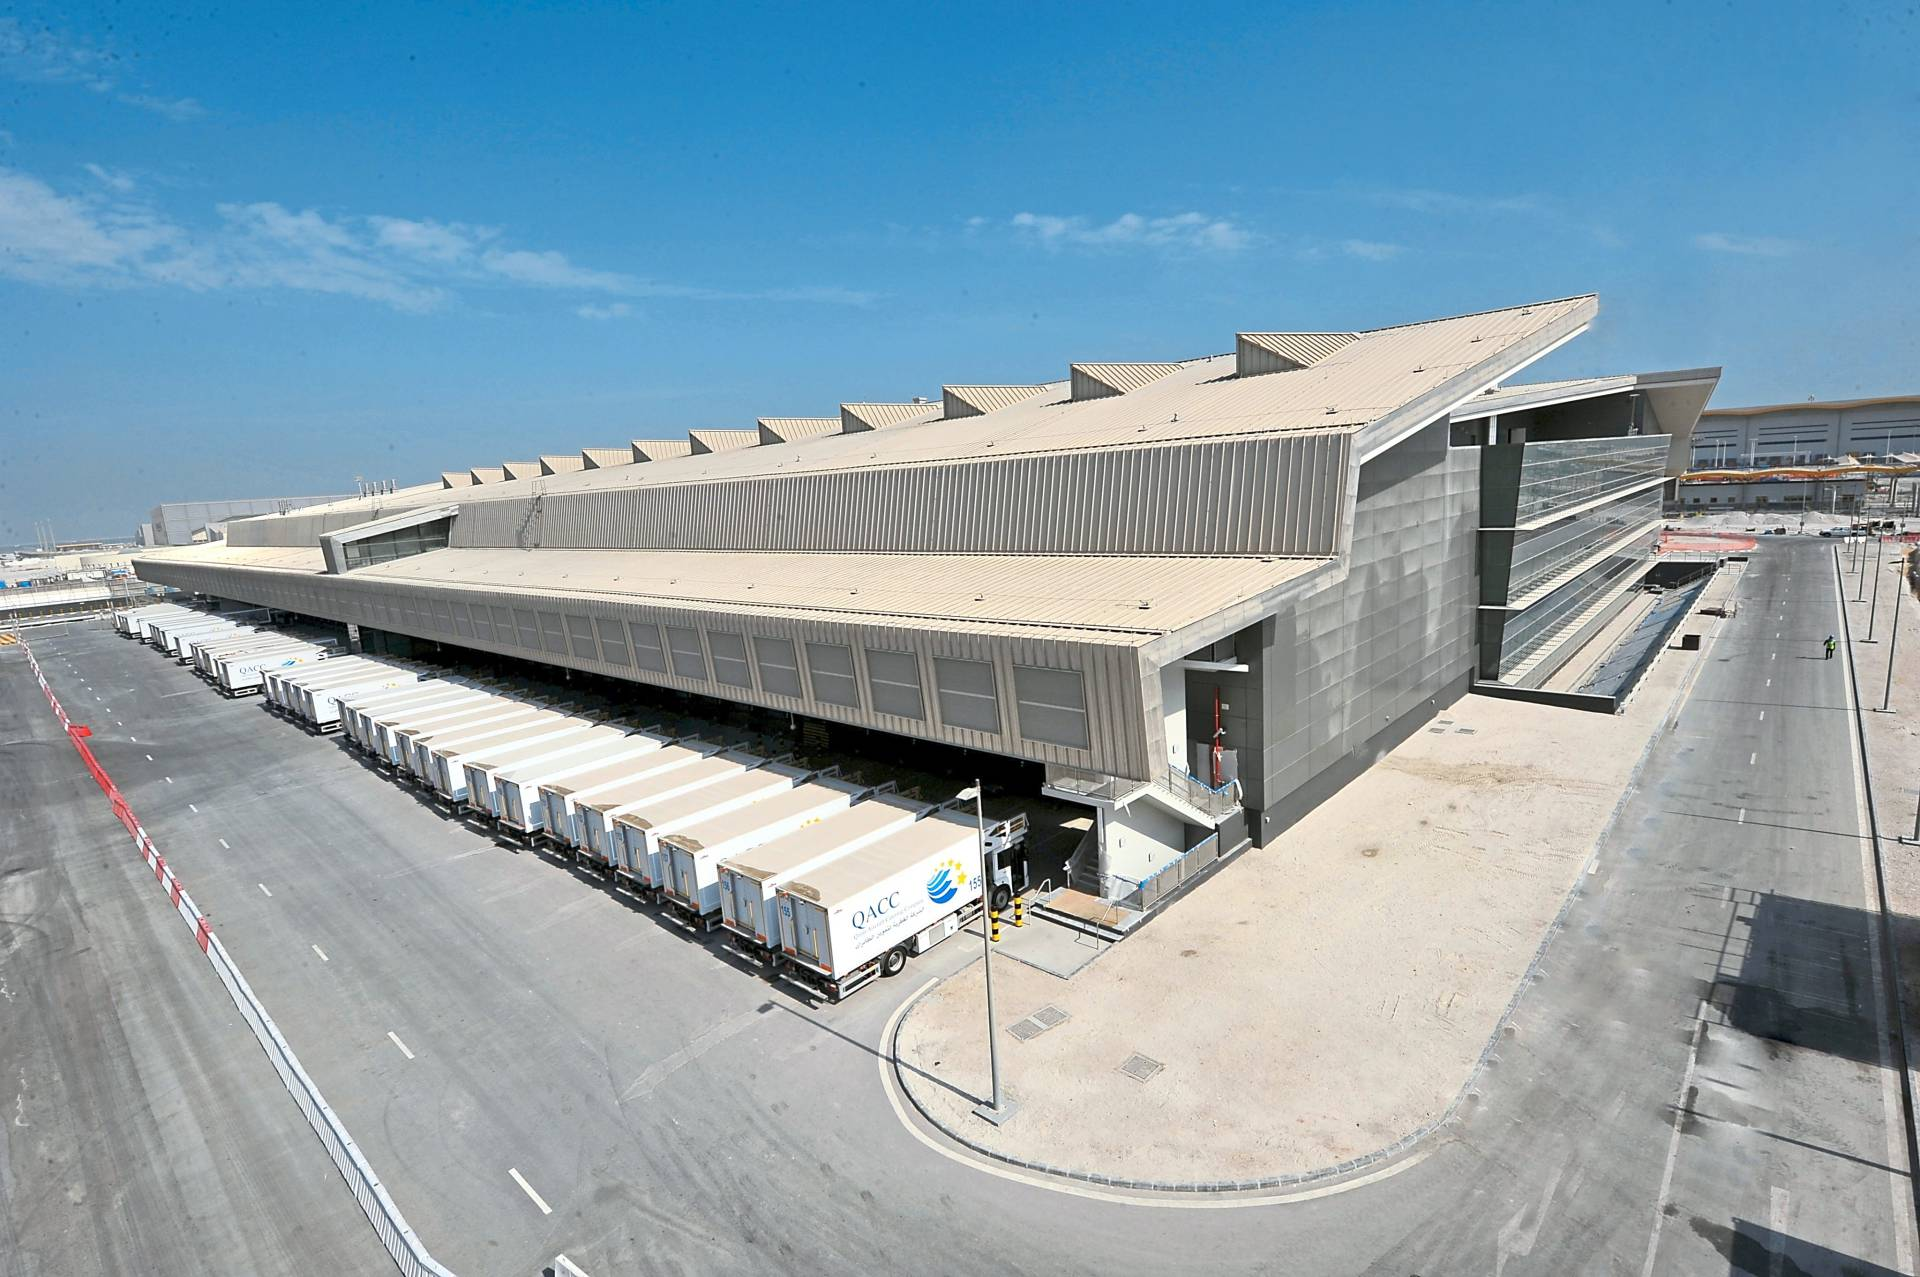 International acclaim: MEB's completed catering facility for the Hamad International Airport in Doha, Qatar.